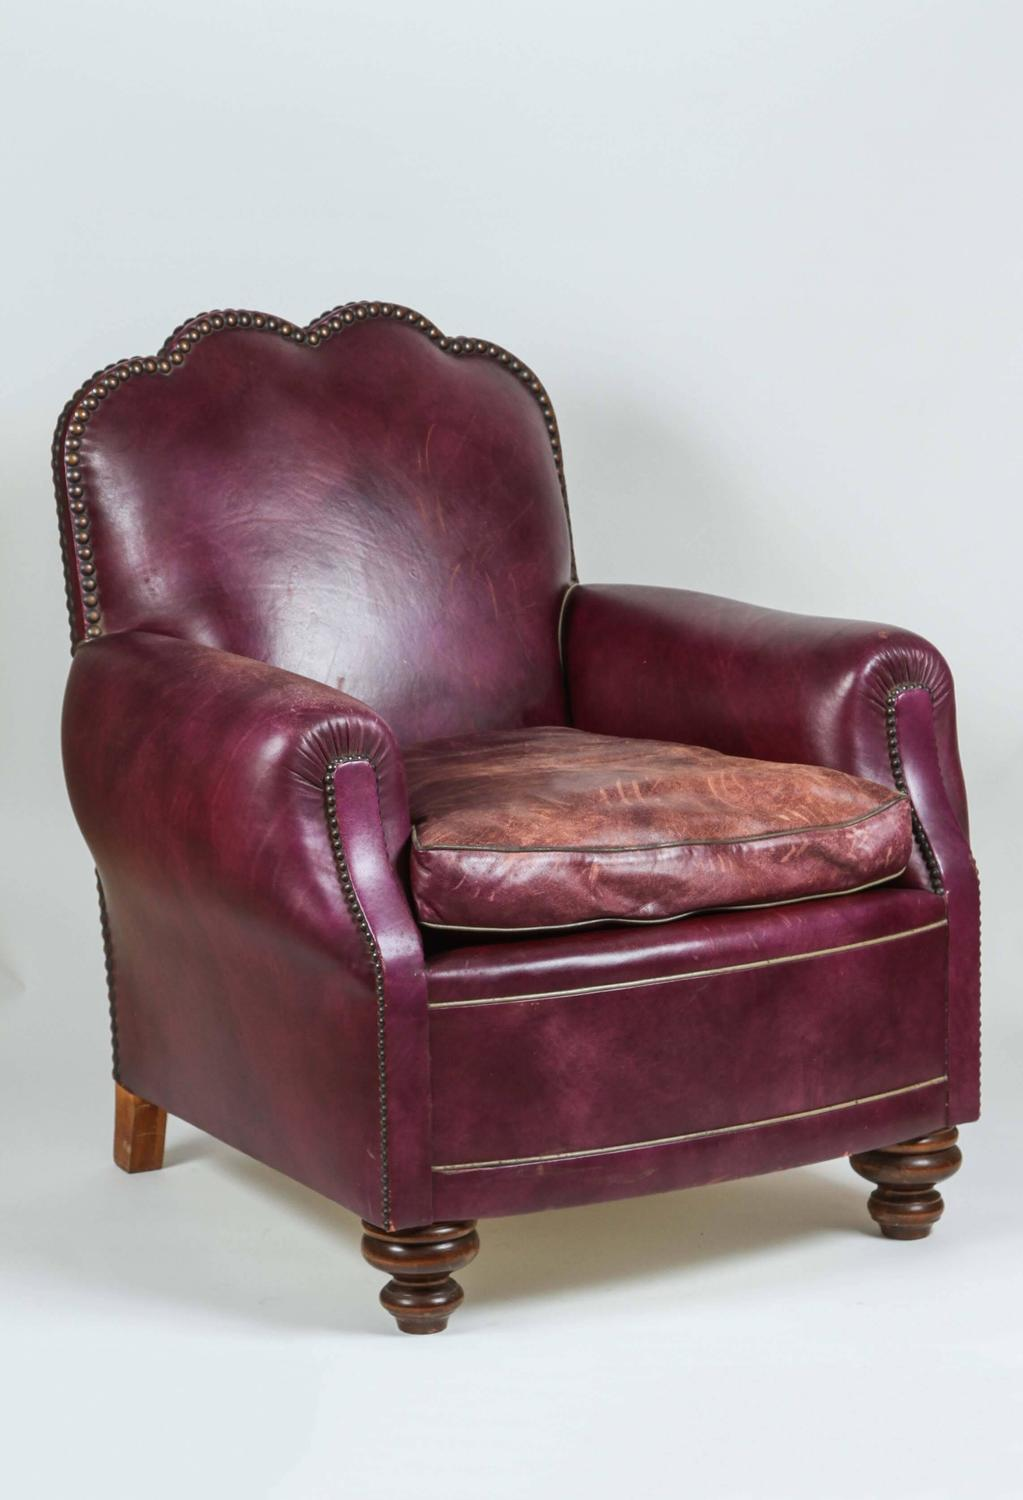 british purple leather club chair for sale at 1stdibs. Black Bedroom Furniture Sets. Home Design Ideas